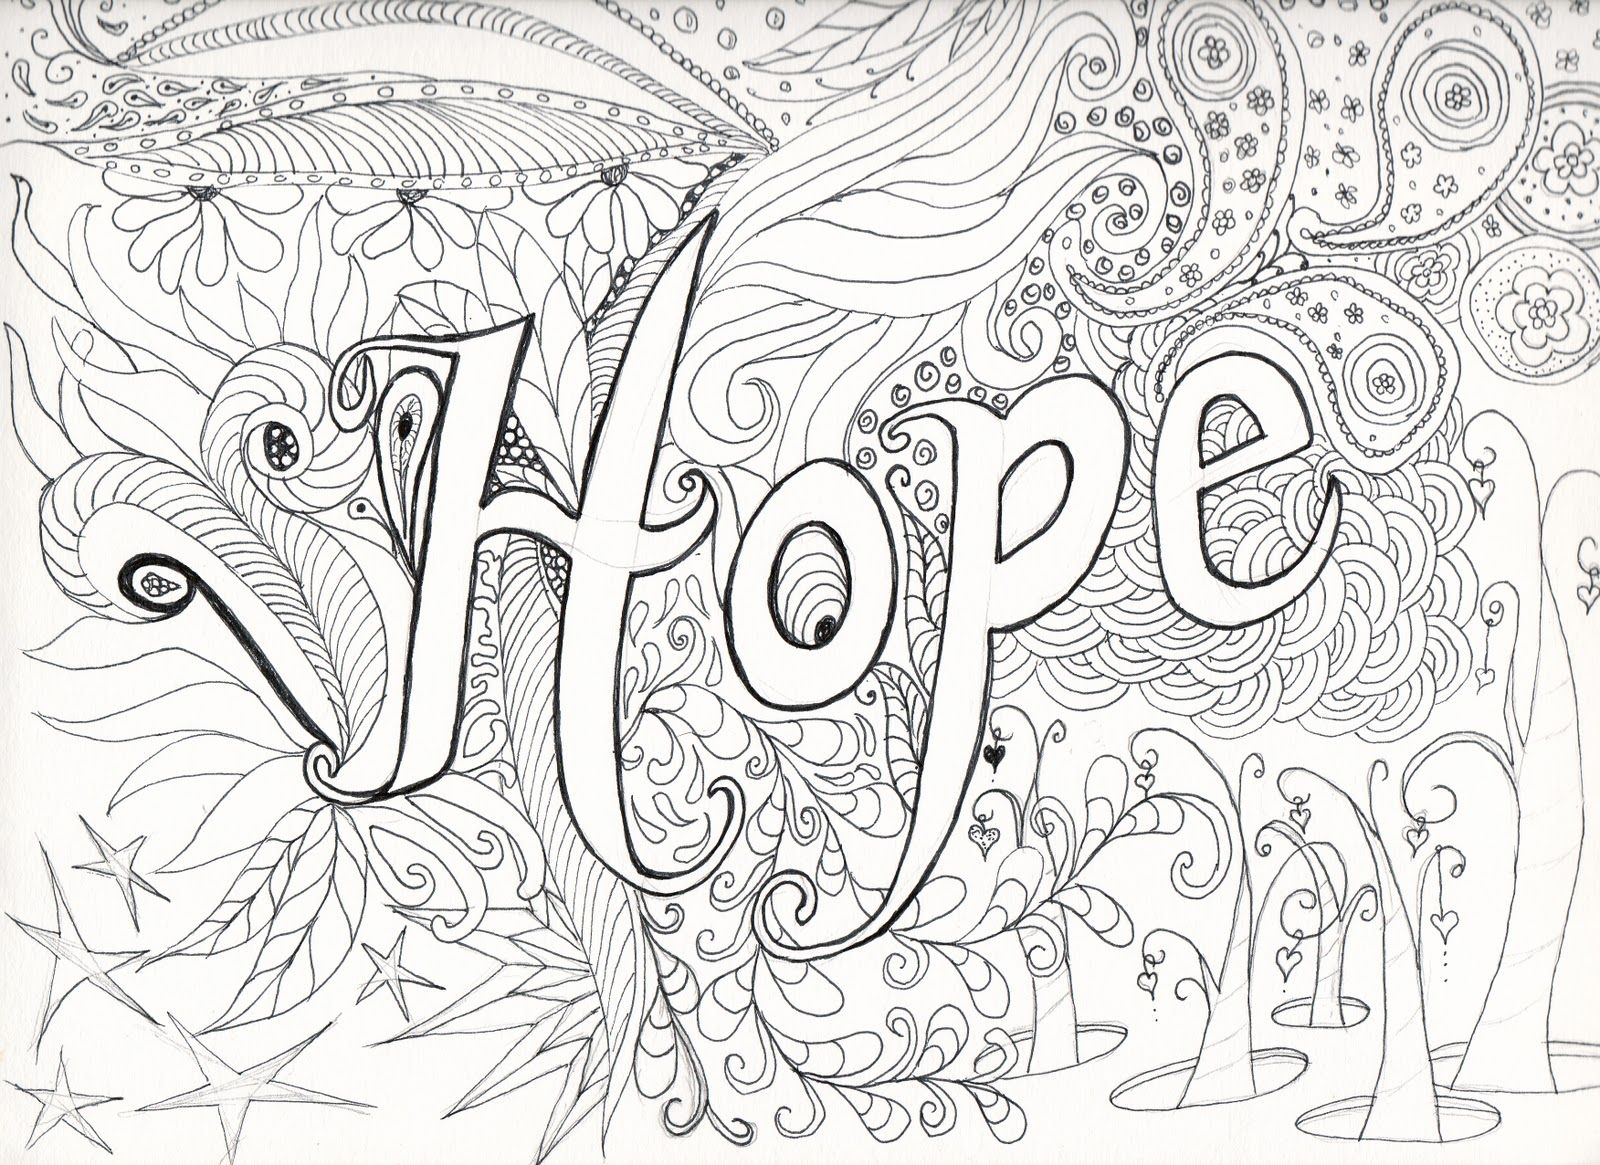 Difficult Coloring Page - Coloring Pages for Kids and for Adults